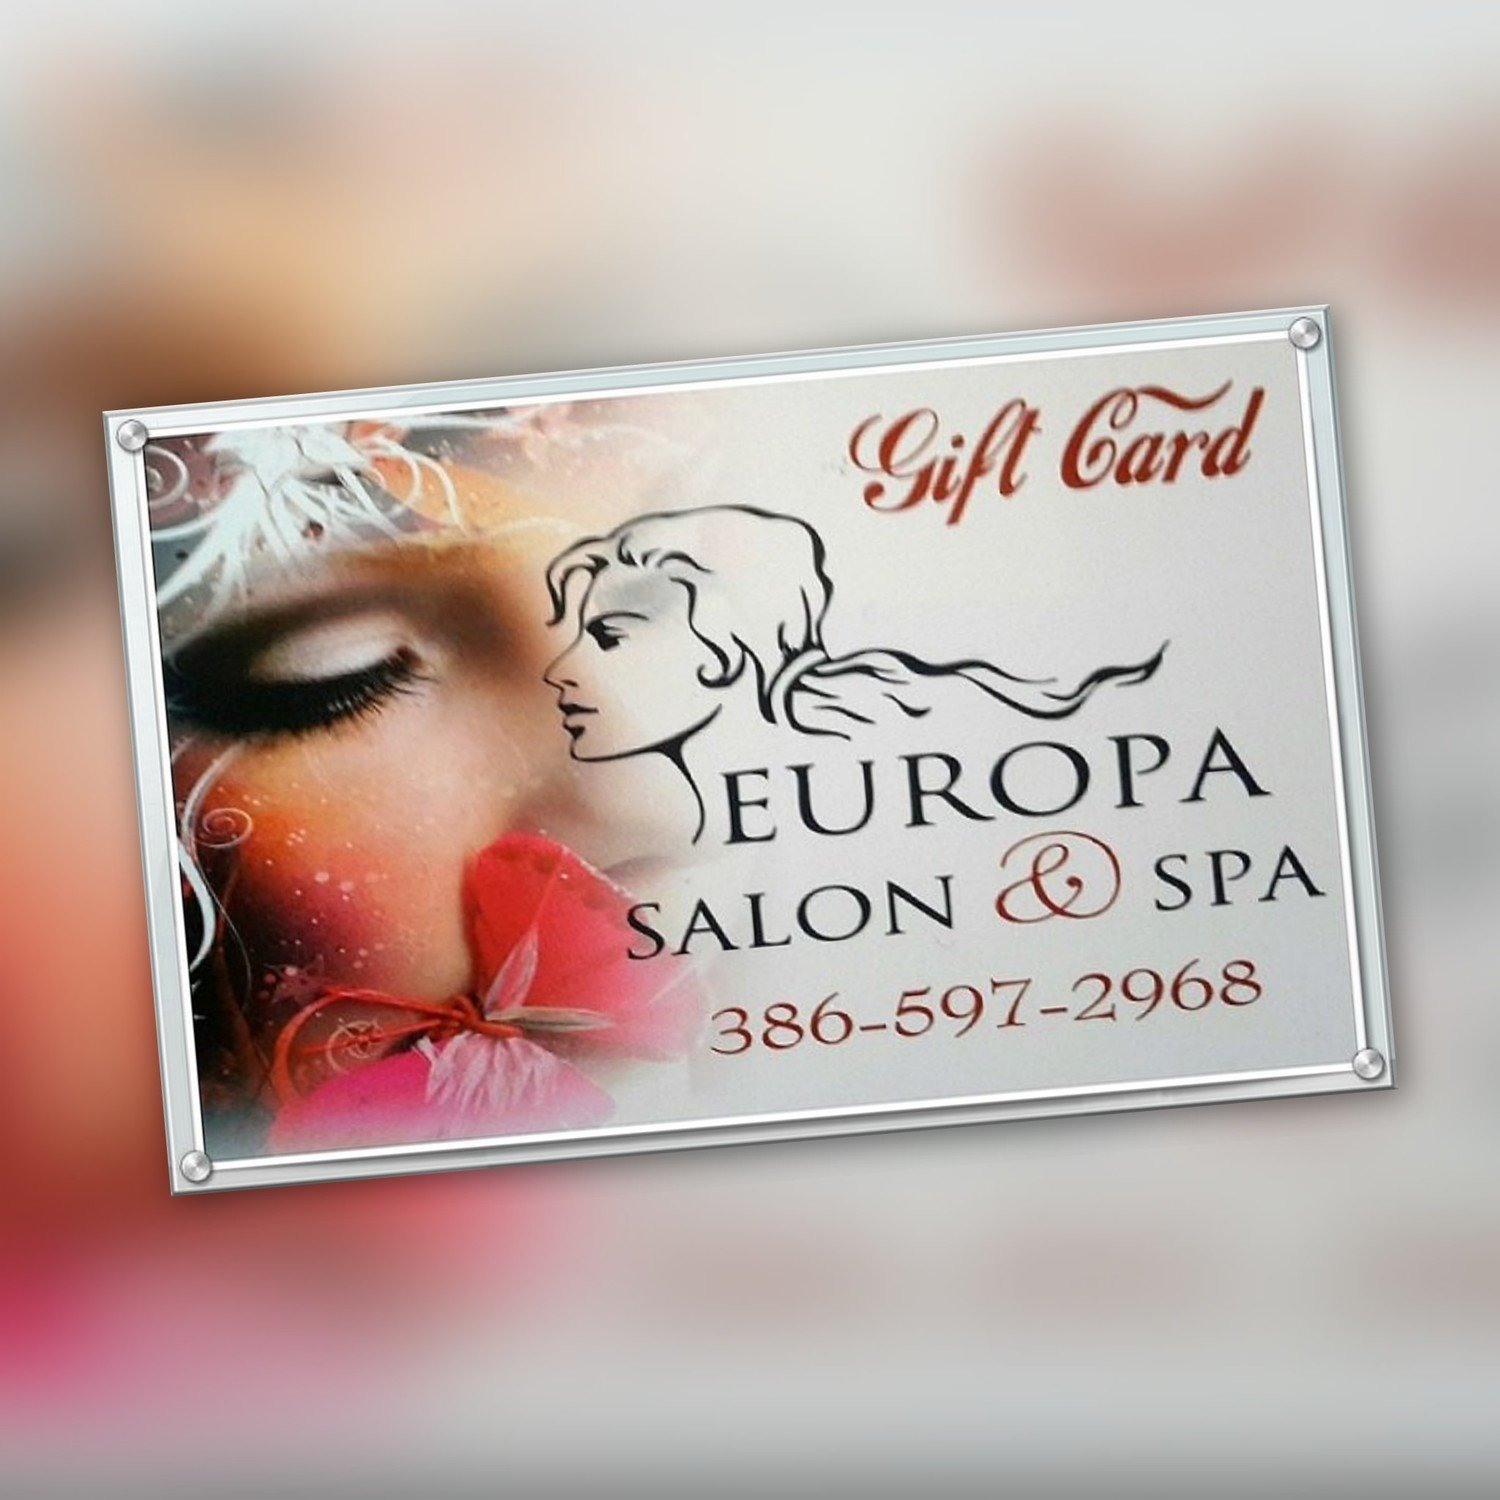 Free MiniFacial with a purchase of Europa Spa Gift Card $300